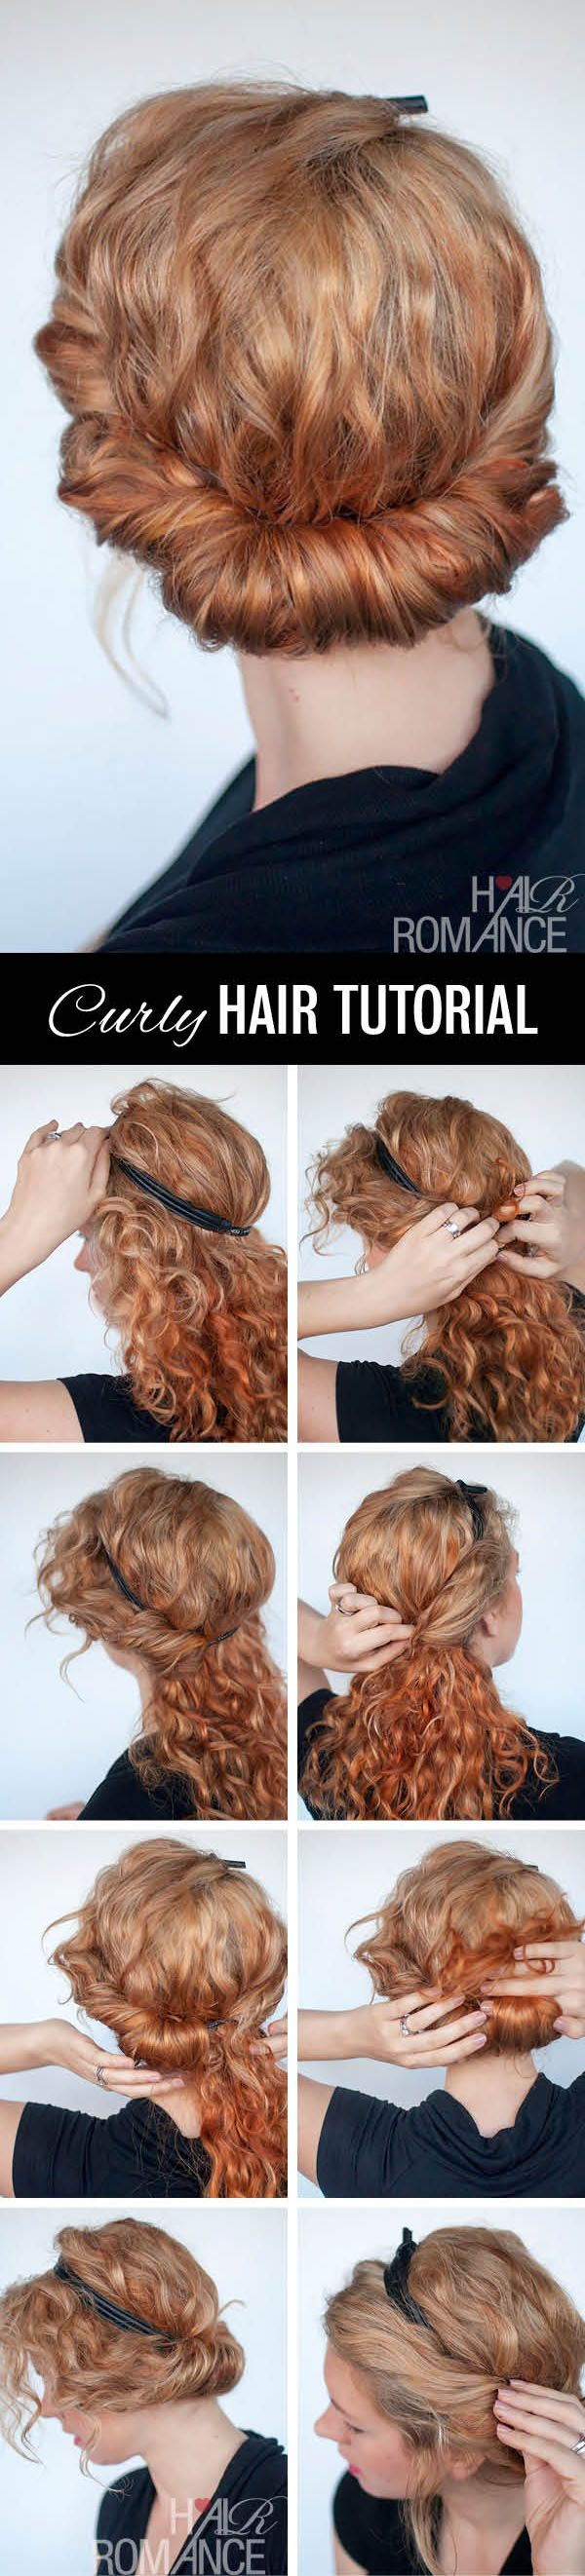 naturally curly hair updo tutorial